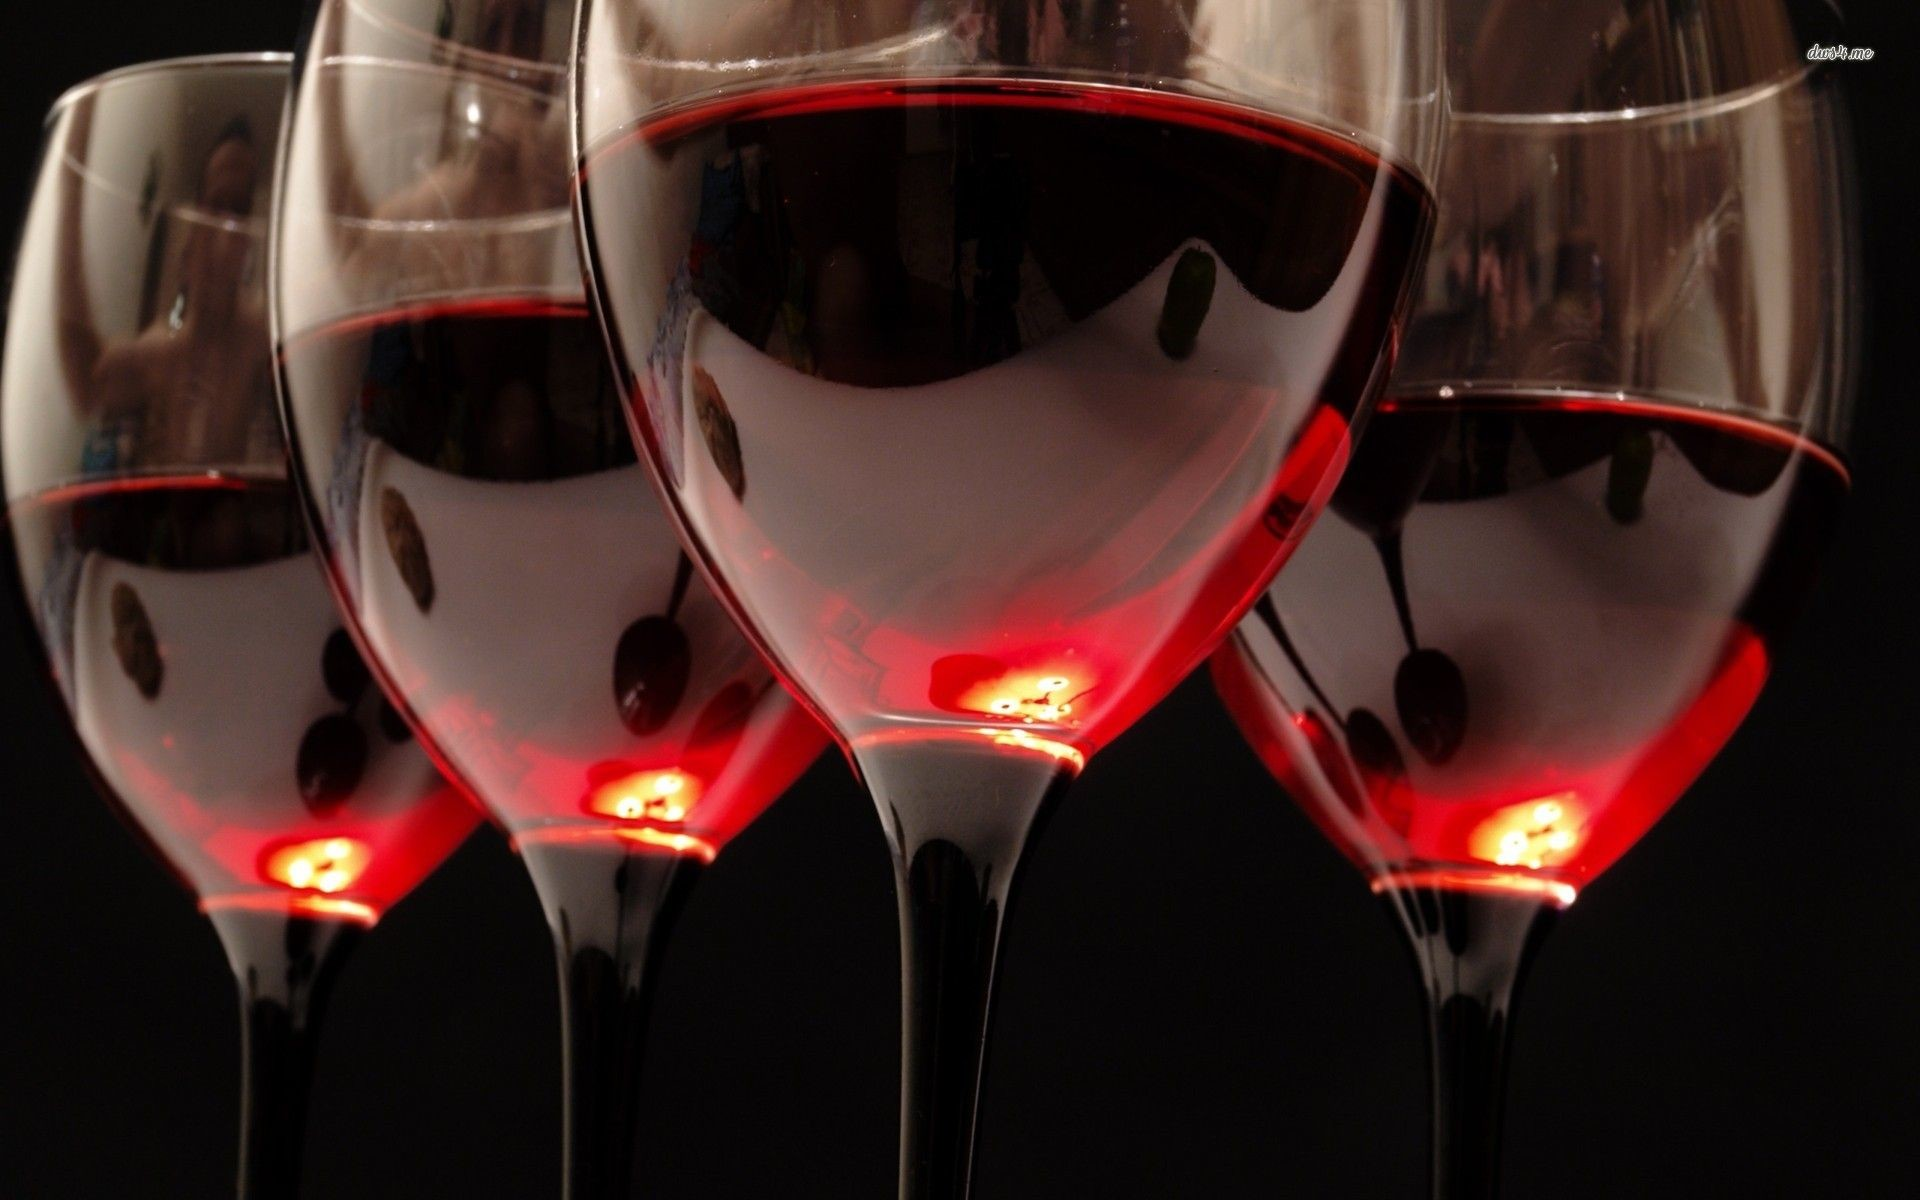 Res: 1920x1200, Pics For > Red Wine In Glass Wallpaper